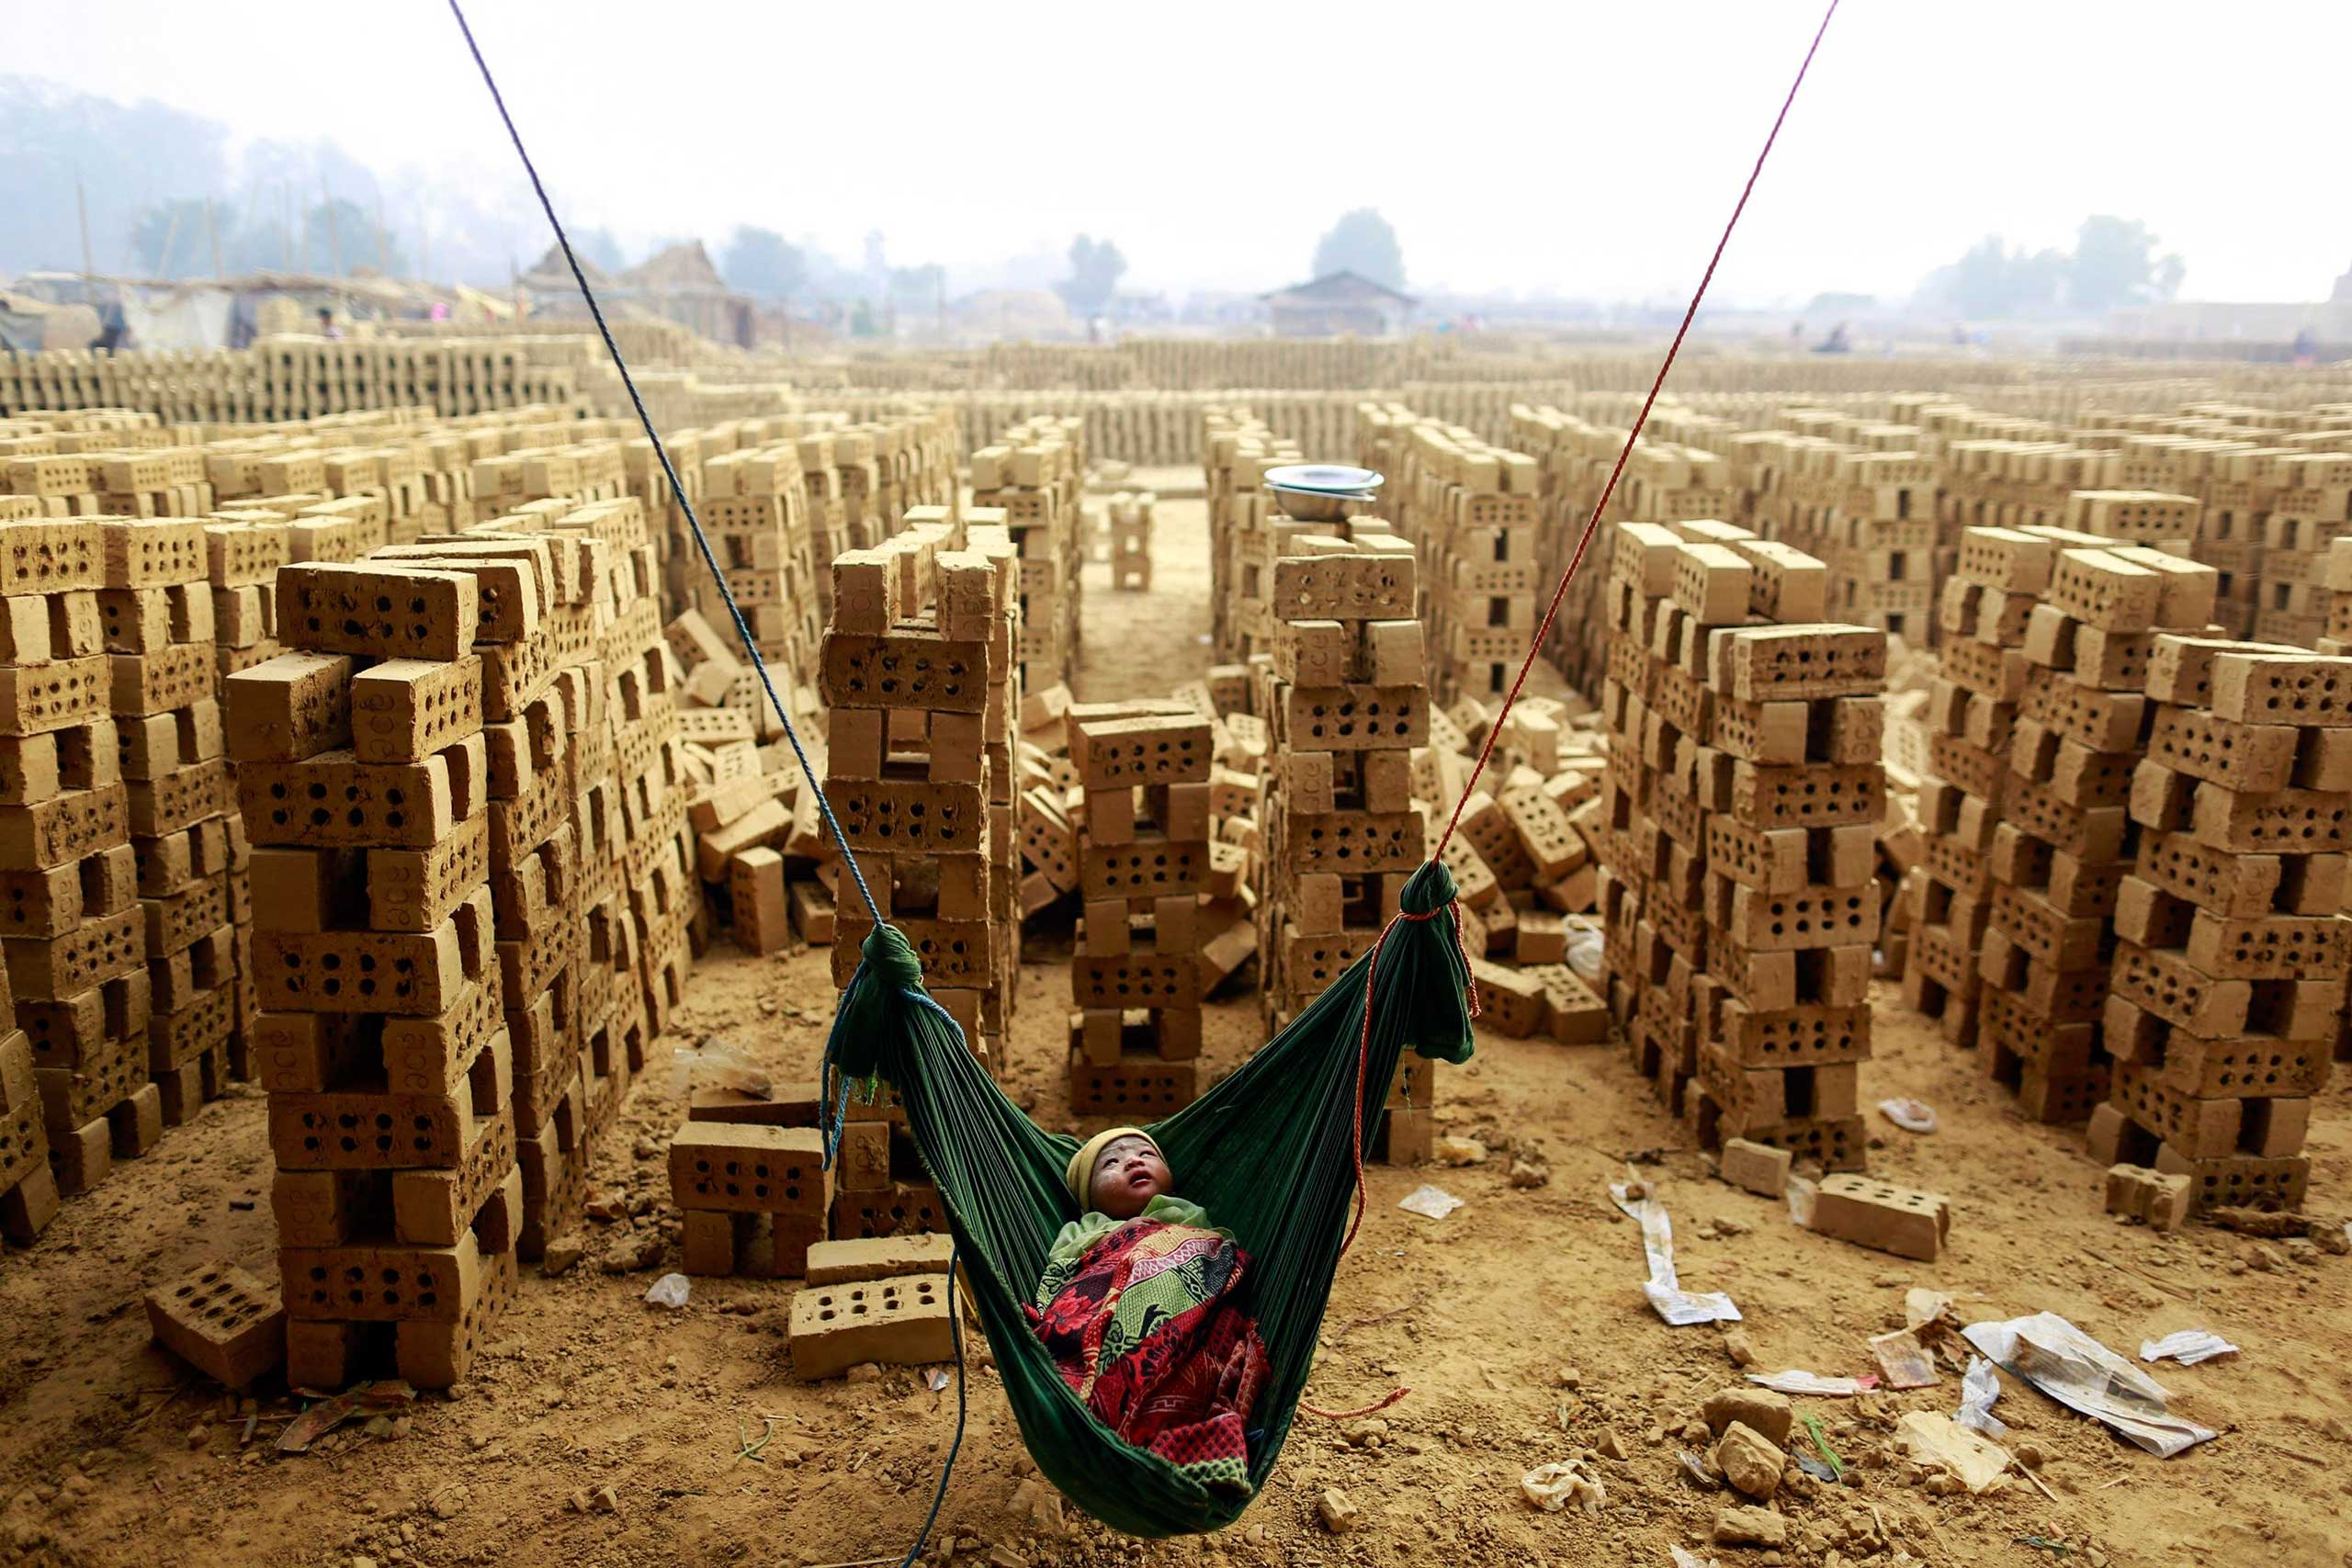 Feb. 1, 2015. A boy sleeps in a hammock while his mother works at a brick kiln on the outskirts of Yangon, Myanmar.